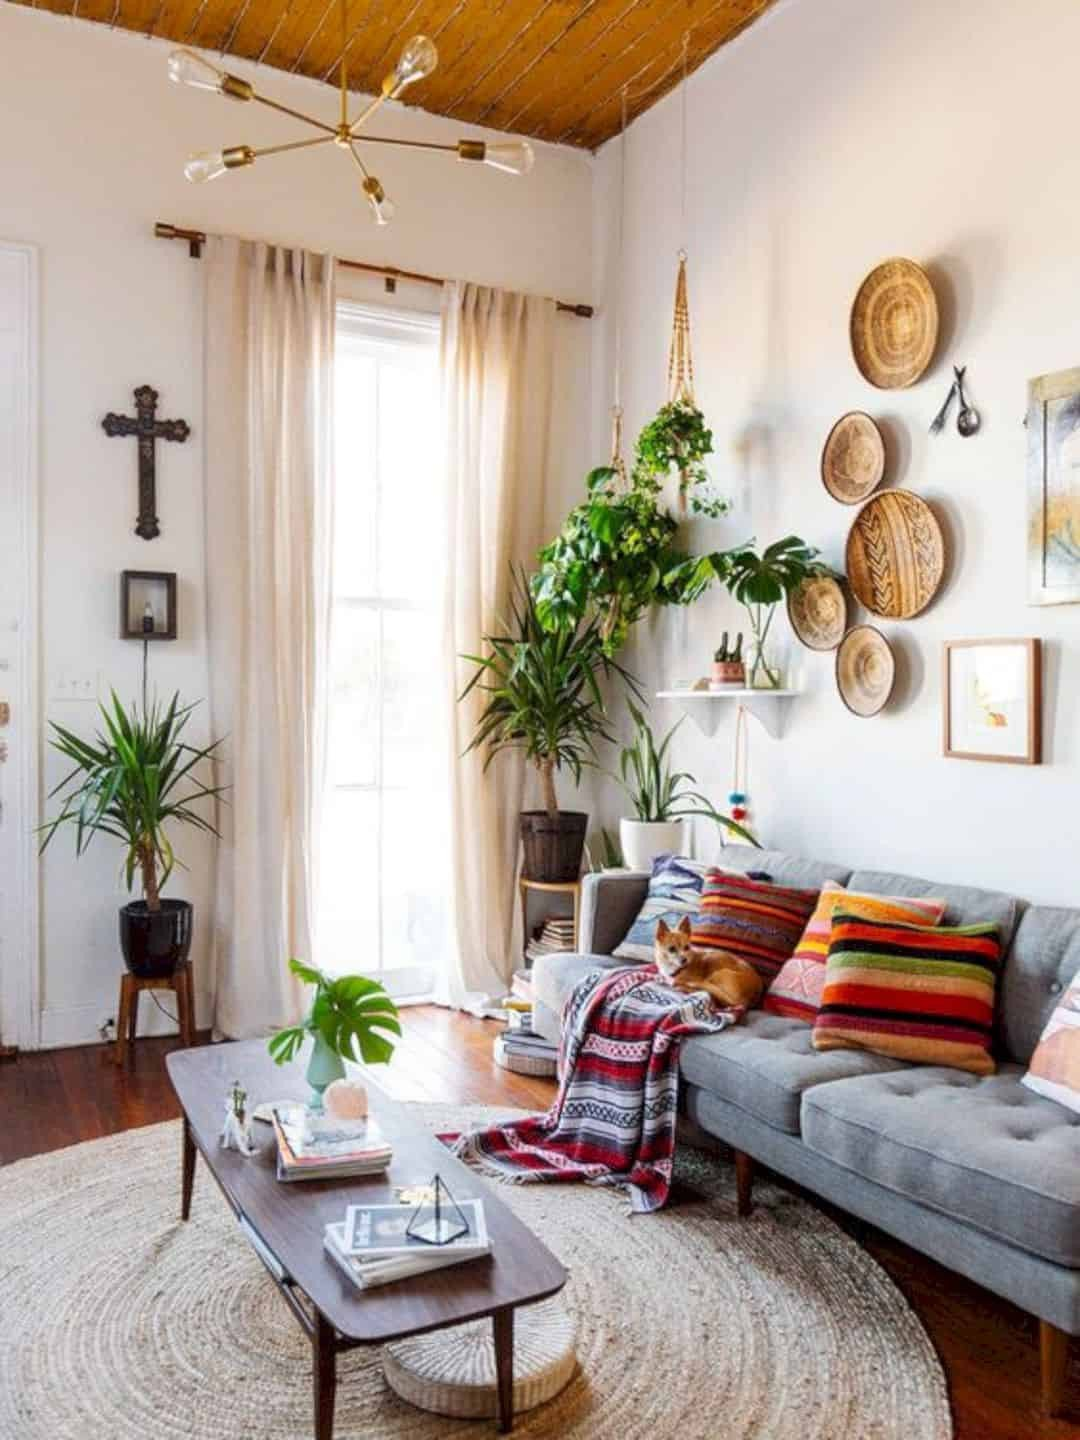 Simple Living Room Decorating Ideas Best Of 16 Simple Interior Design Ideas for Living Room